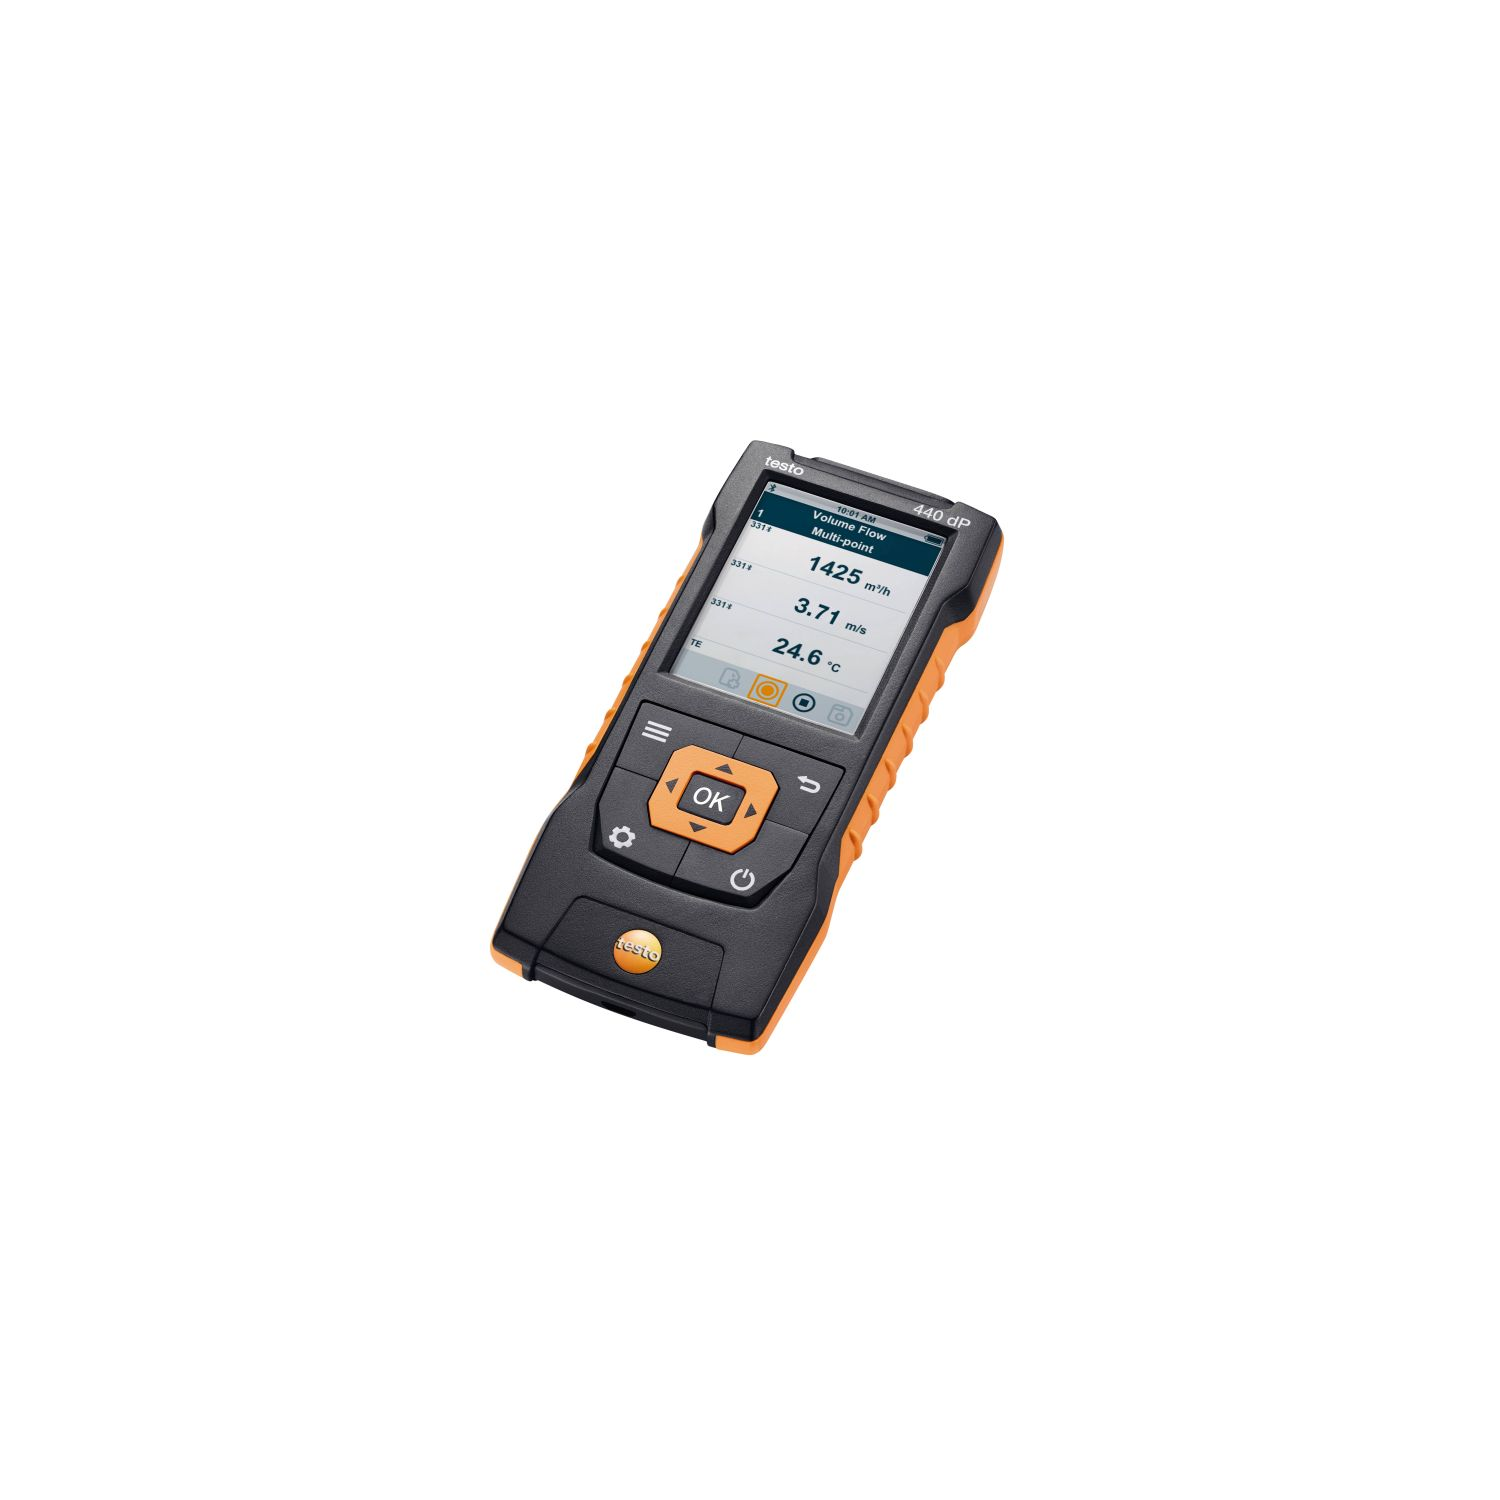 testo 440 dP Air velocity and IAQ measuring instrument including differential pressure sensor